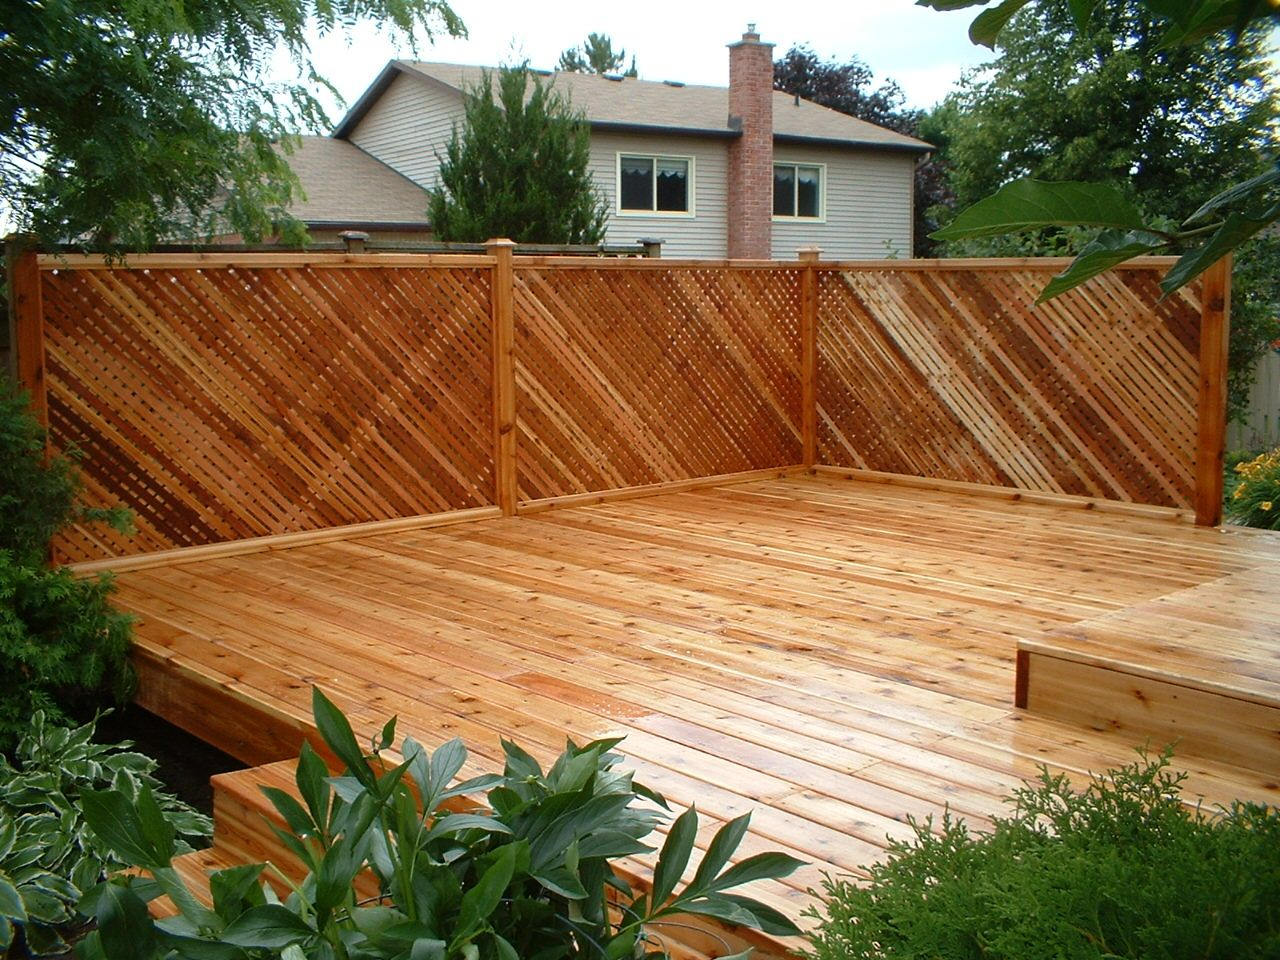 Design Deck Privacy Walls image detail for western red cedar deck with privacy lattice rails